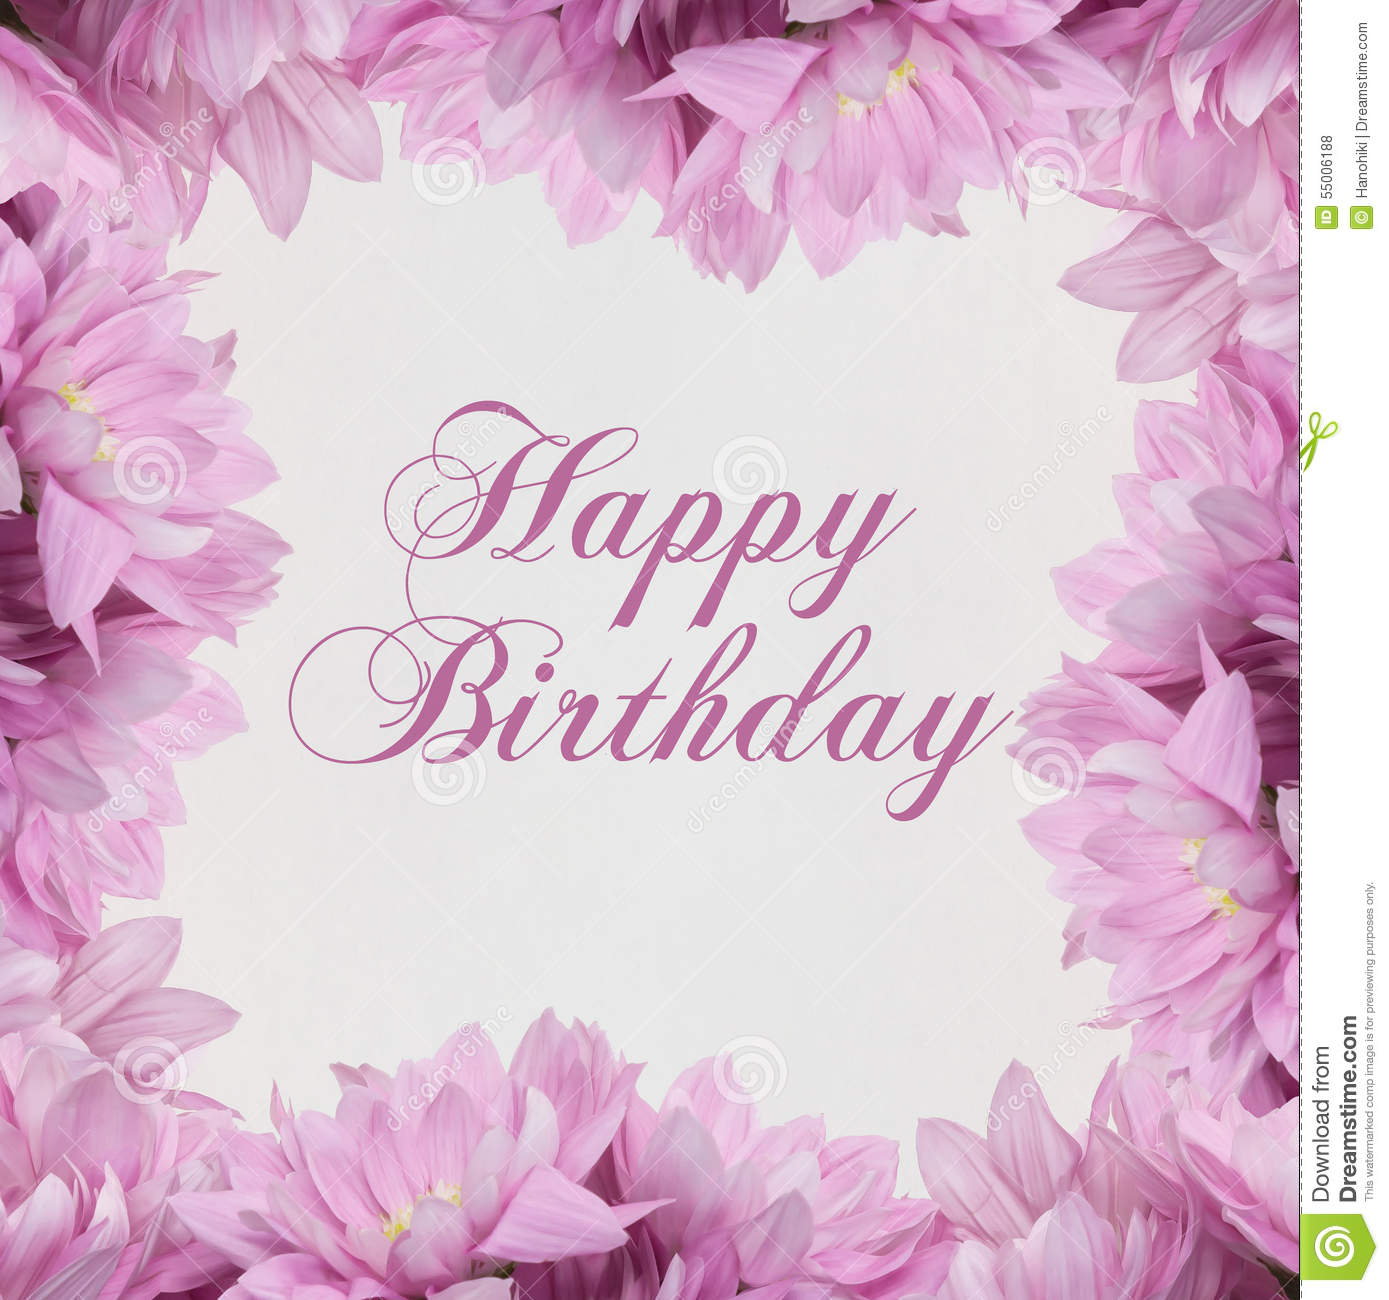 Happy Birthday Card With Flowers Stock Illustration - Illustration of blooming, card: 55006188